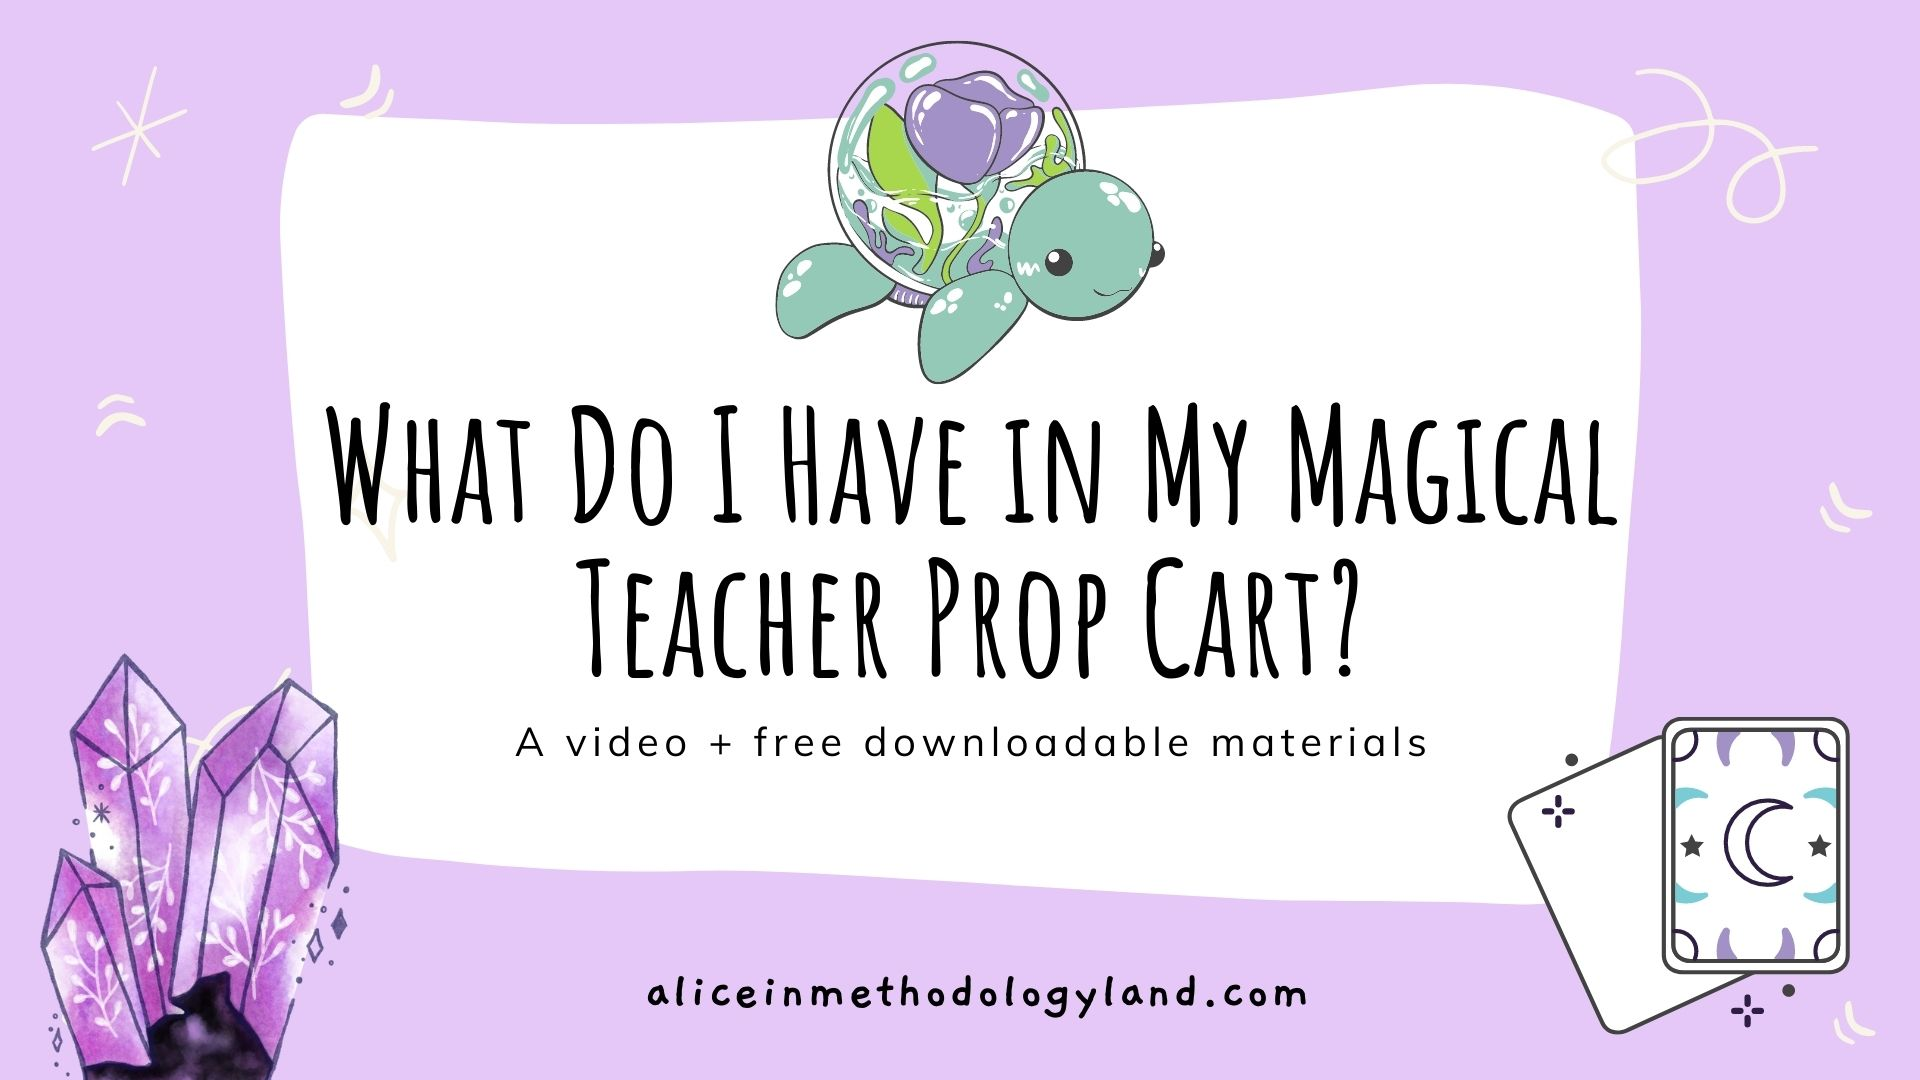 What do I Have in my Magical Online Teacher Prop Cart? ♥ Props!